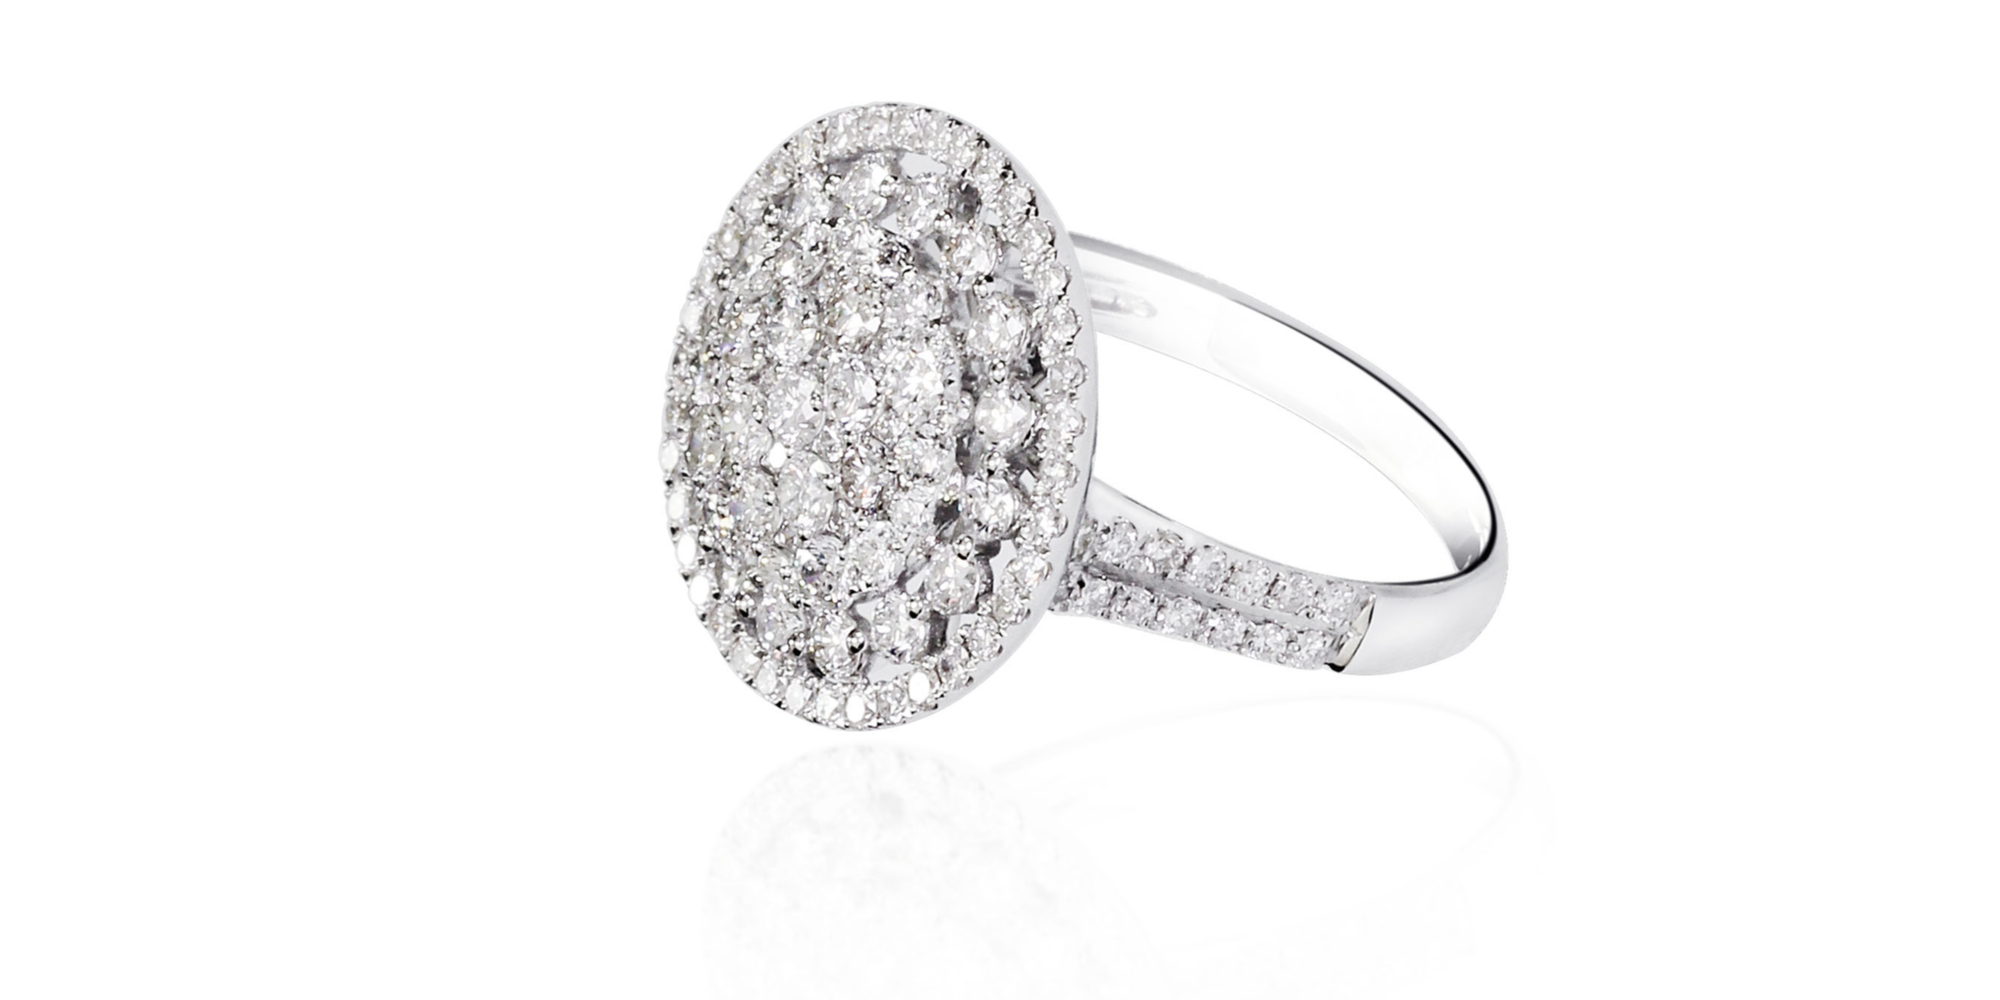 Want to know of the biggest engagement ring trends? Seamless halo engagement rings are all you could ever want